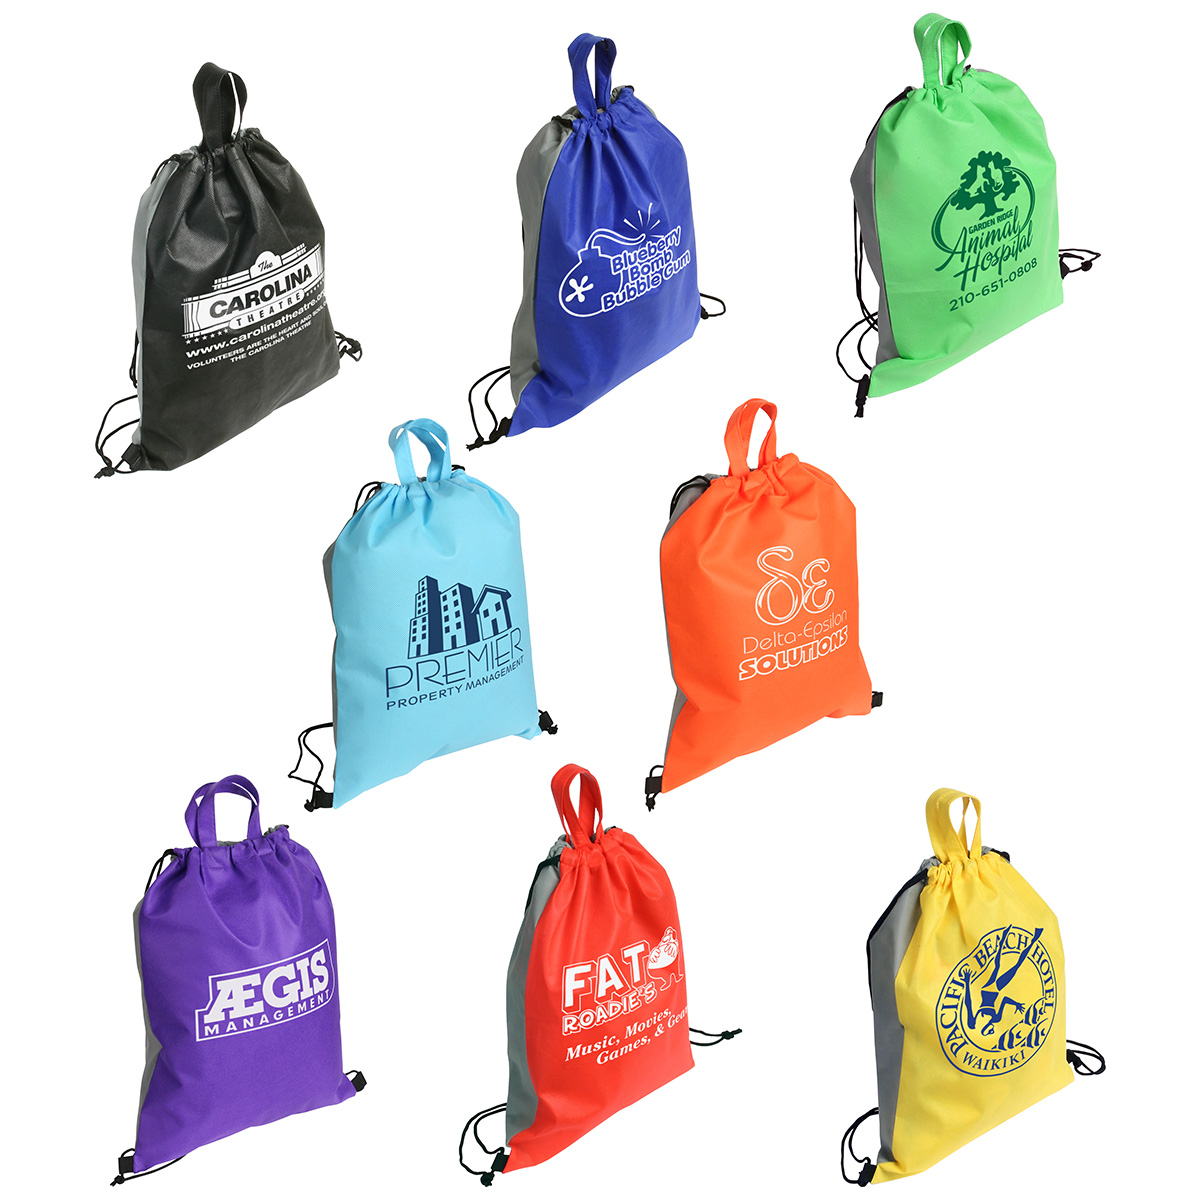 Glide Right Drawstring Backpack, WBA-GR09 - 1 Colour Imprint